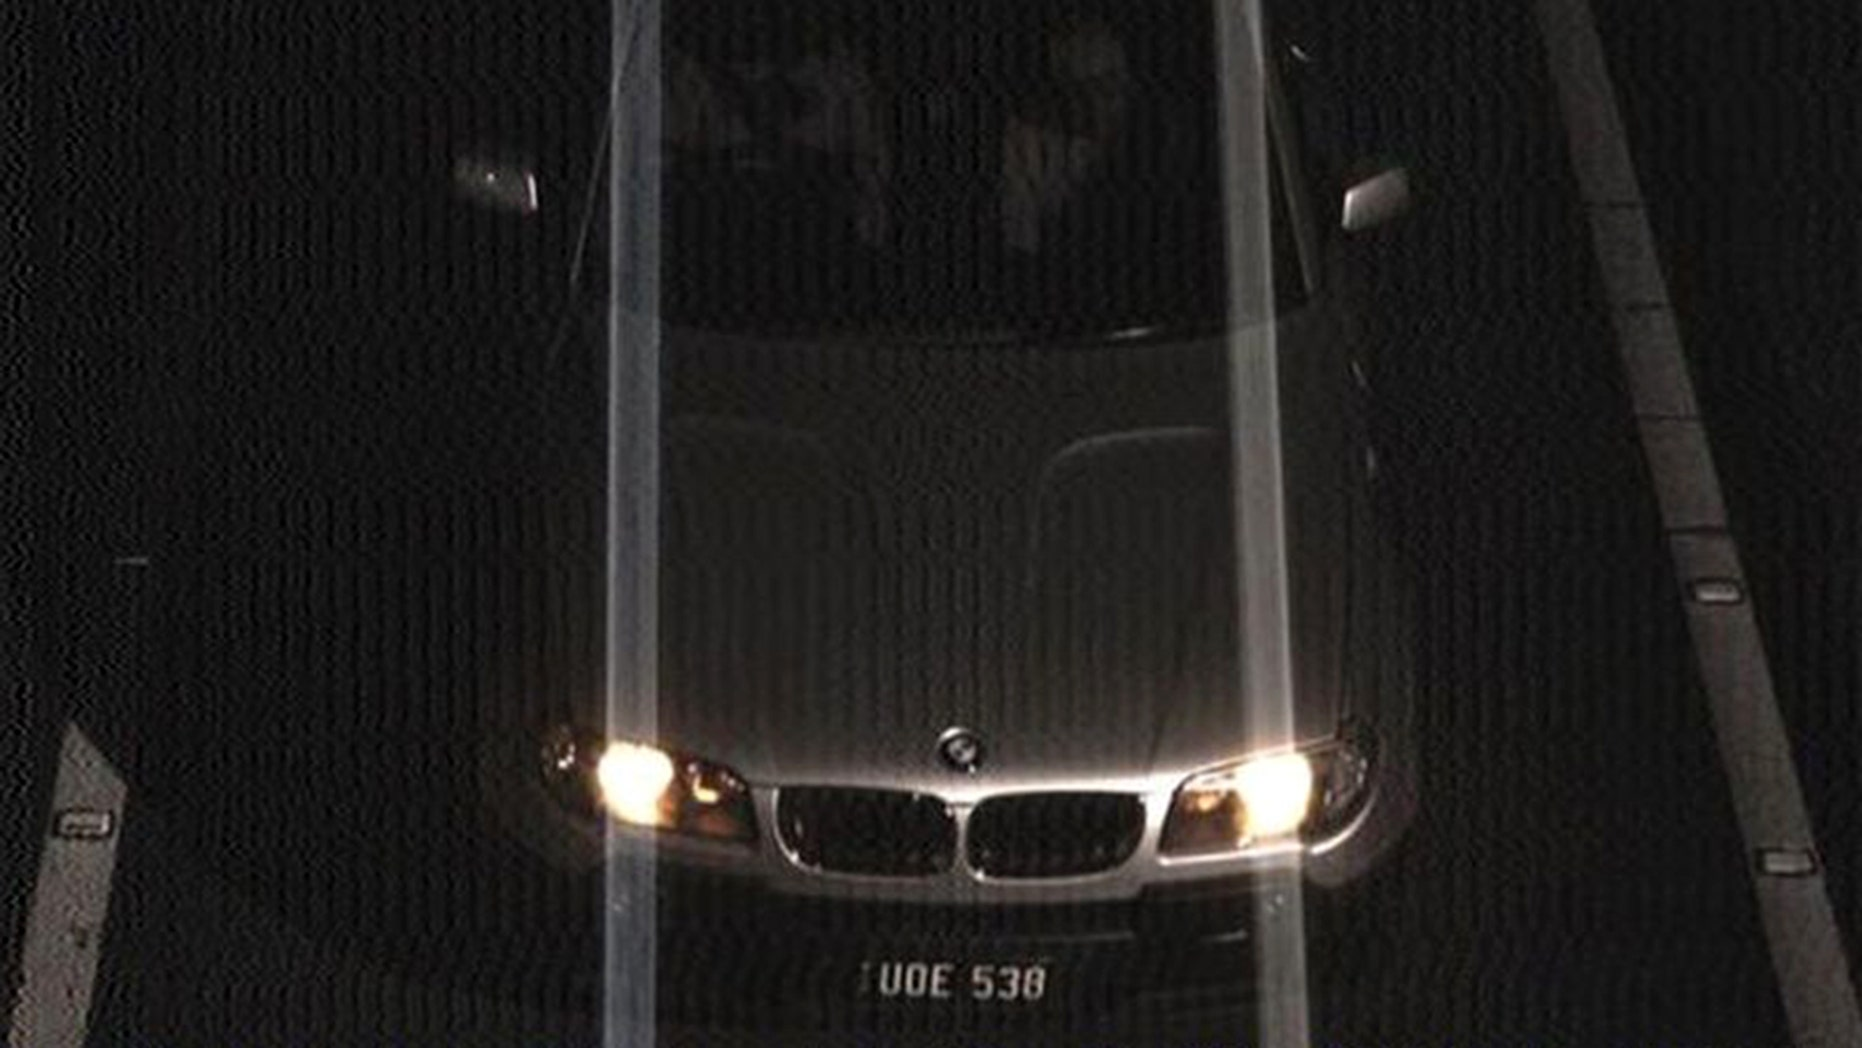 A BMW photographed in Broadmeadows, Australia, with cloned licence plates